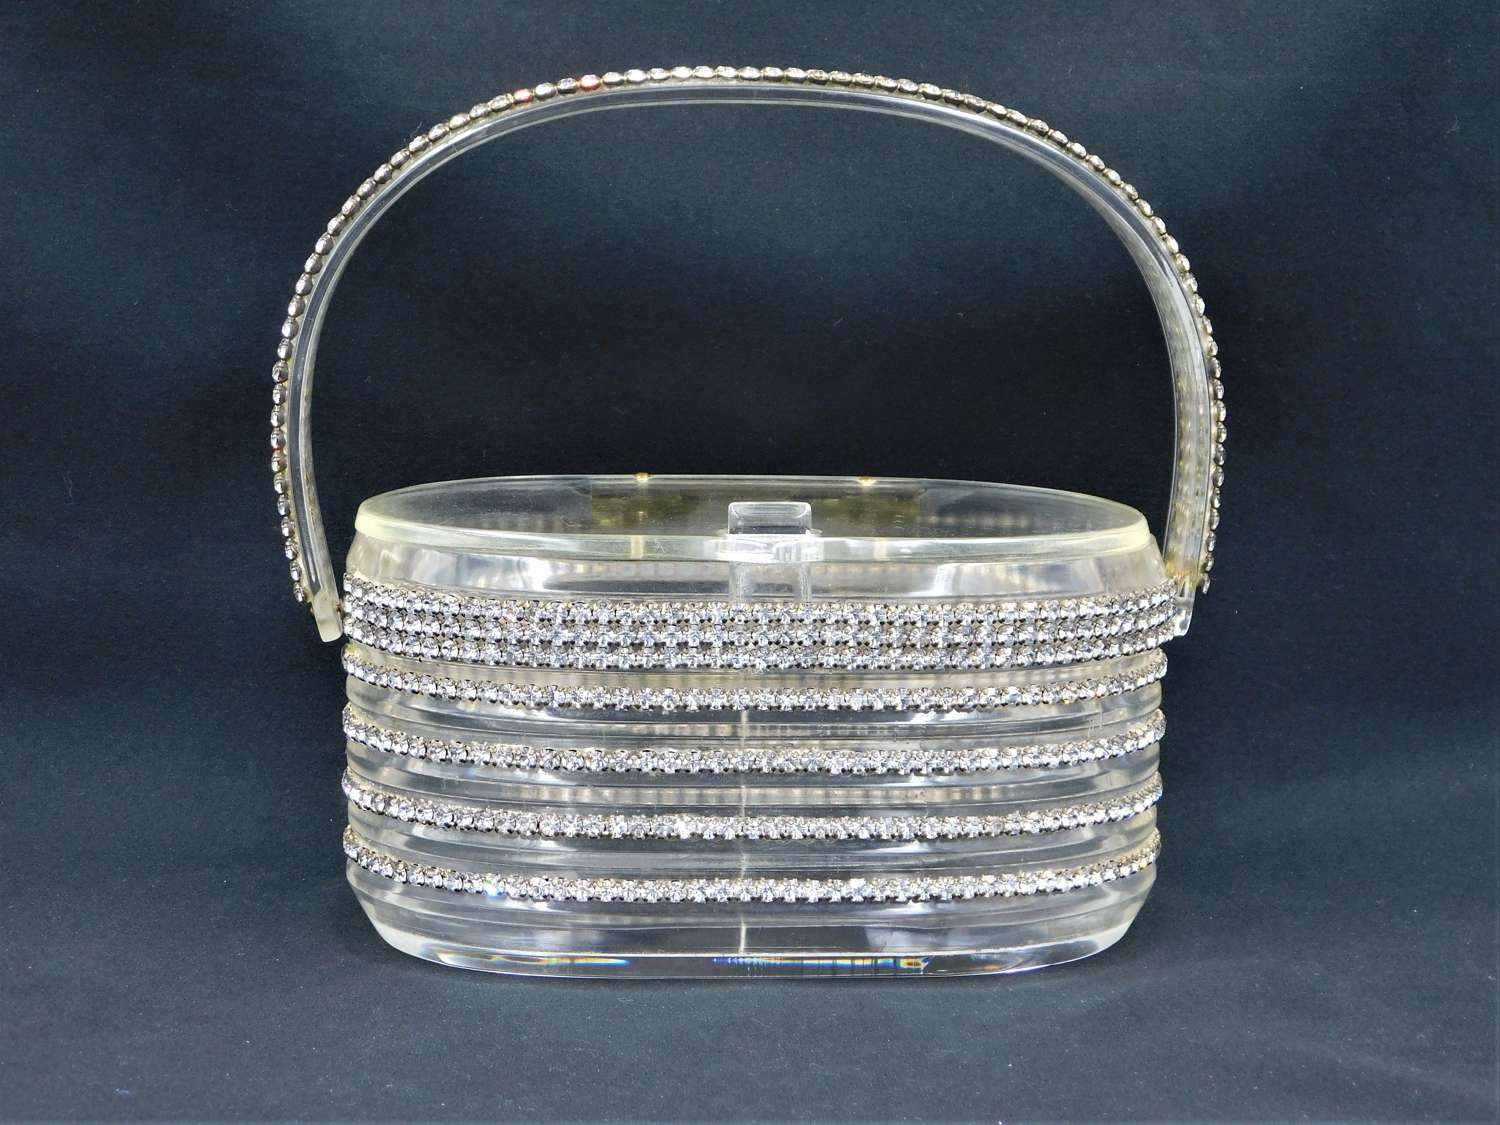 Wilardy Lucite Bag